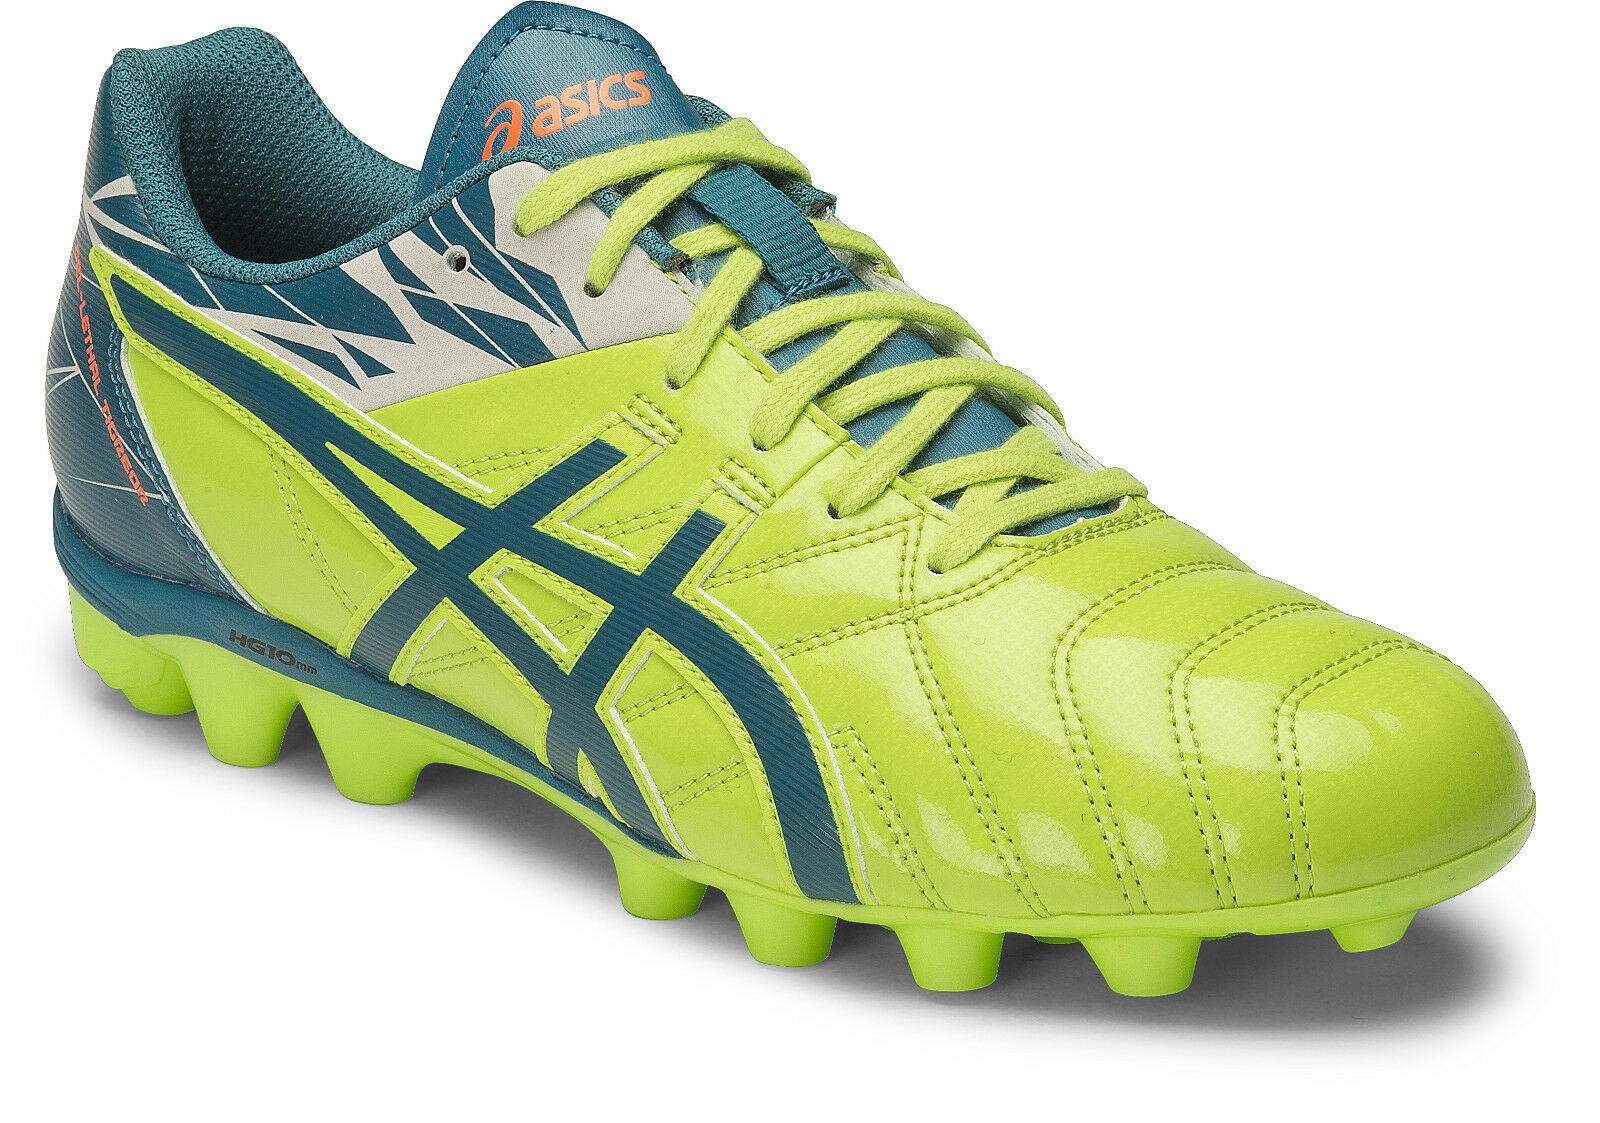 Asics Lethal Tigreor 9 IT GS bambini Footbtutti sautope 0561  gratuito Aus Delivery